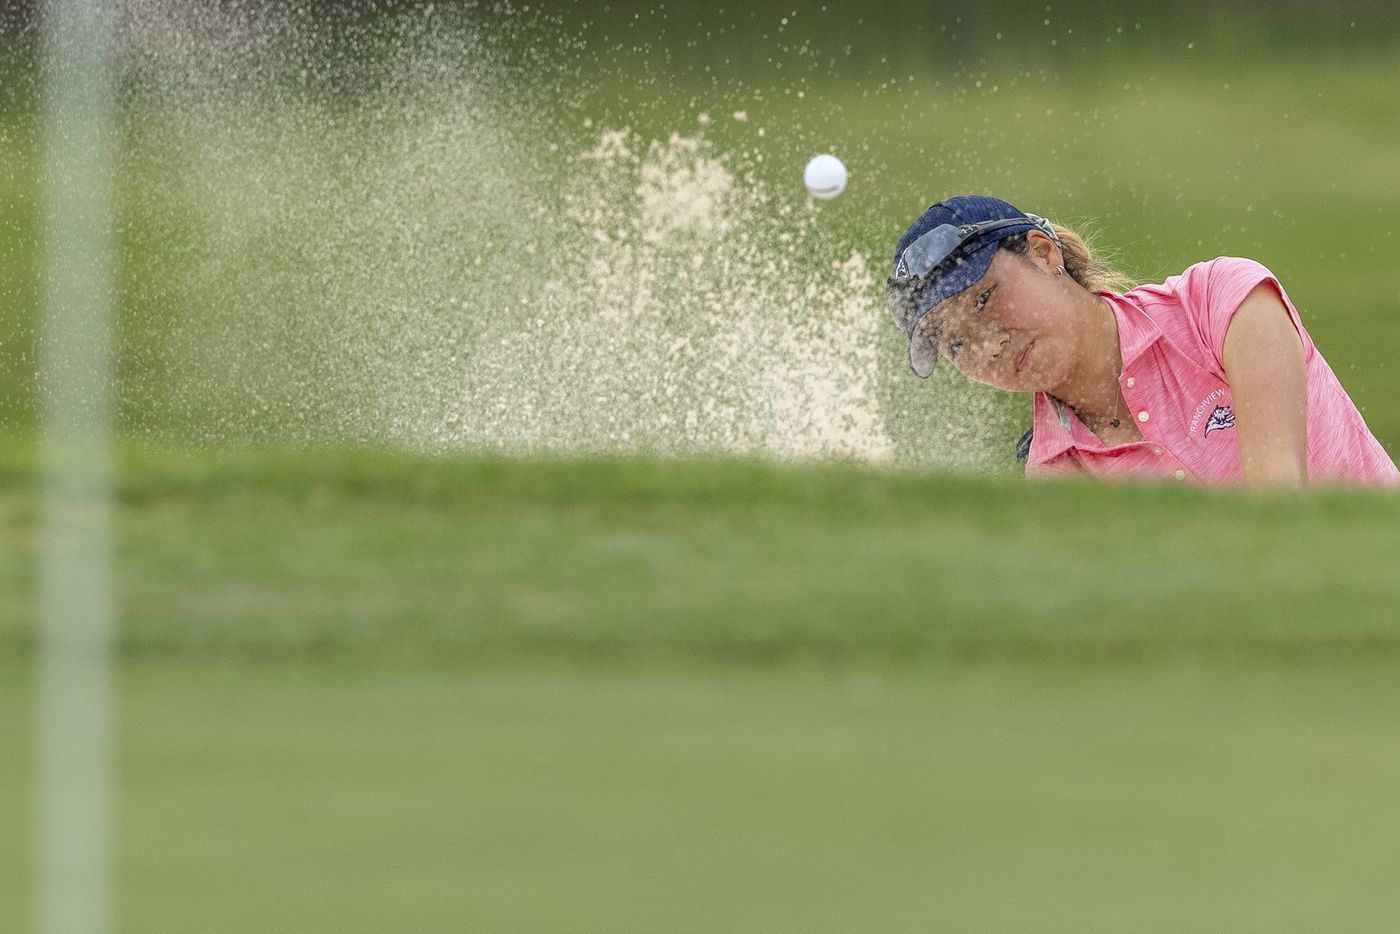 Carrollton Ranchview's Bohyun Park chips on to the 17th green during the final day of the UIL Class 4A girls golf tournament in Kyle, Tuesday, May 11, 2021. (Stephen Spillman/Special Contributor)